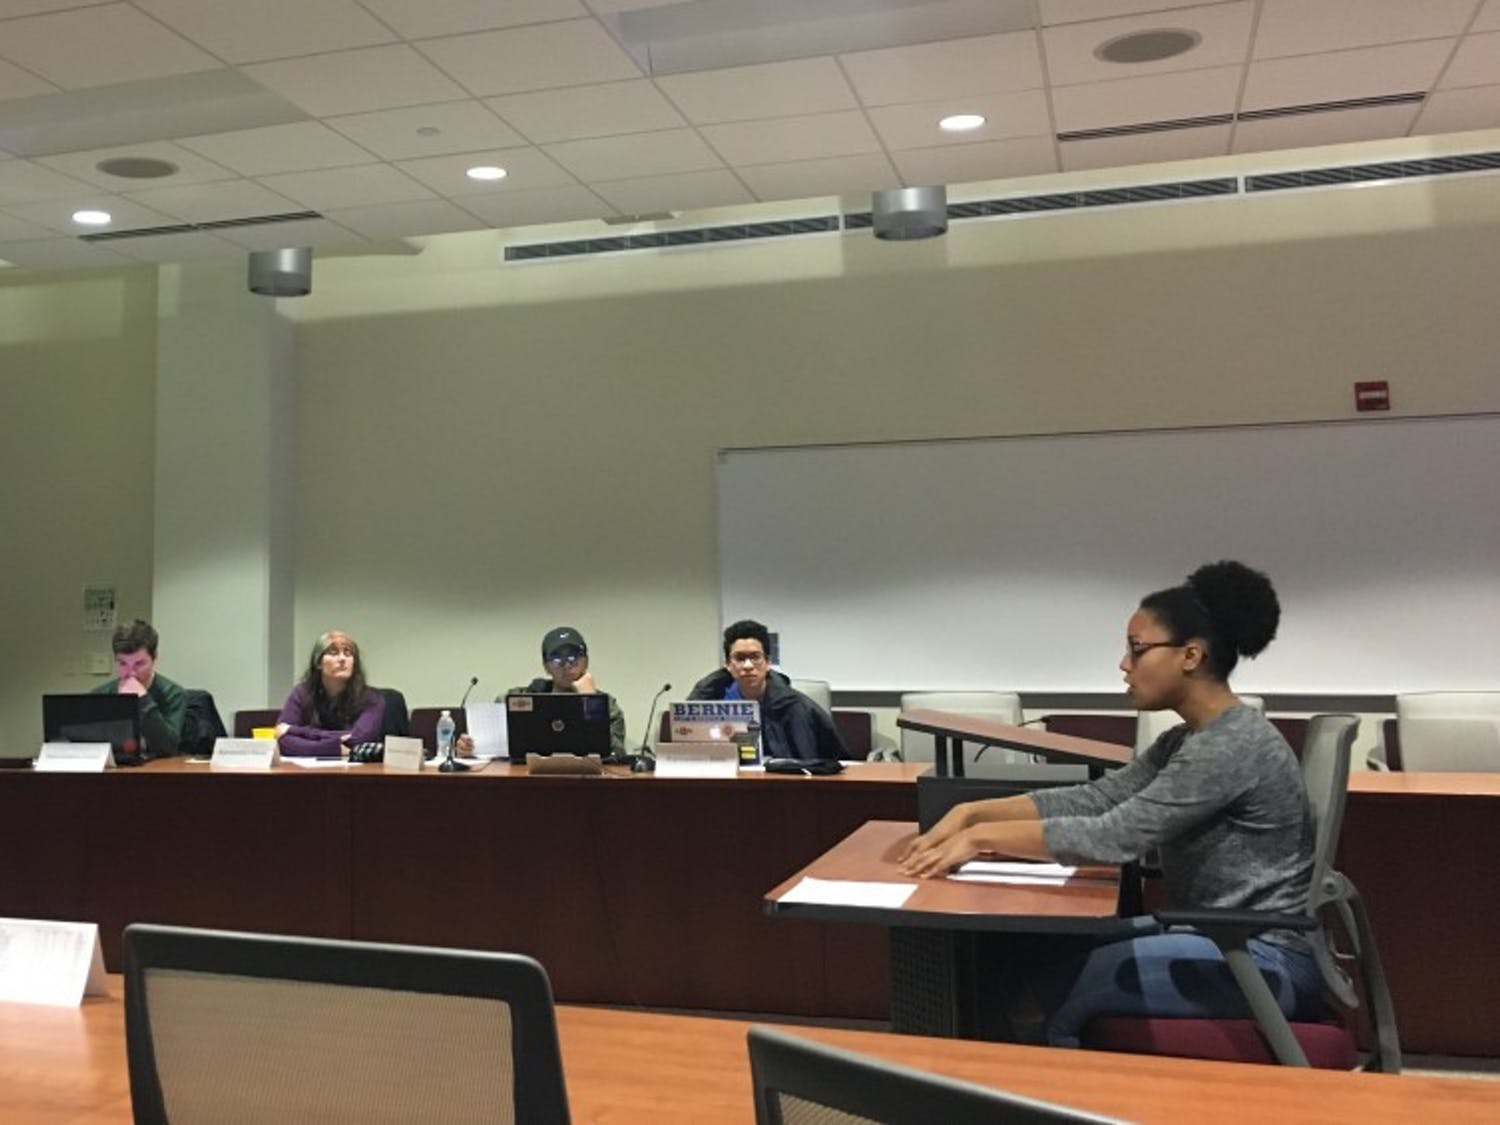 Representatives for two student resources, including Katrina Morrison of the Student Activity Center Governing Board, presented budget proposals to the Student Services Finance Committee Thursday.